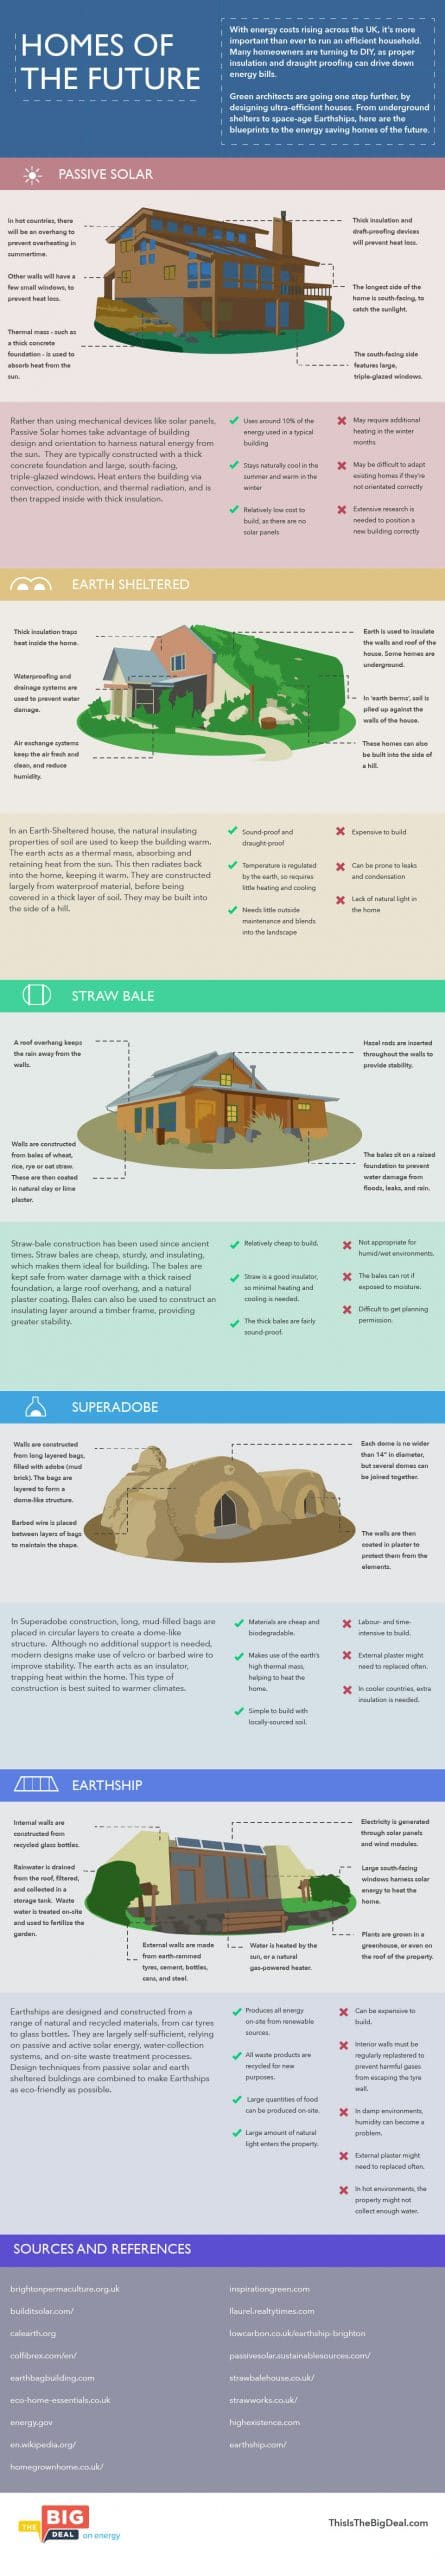 Infographic of different green building styles